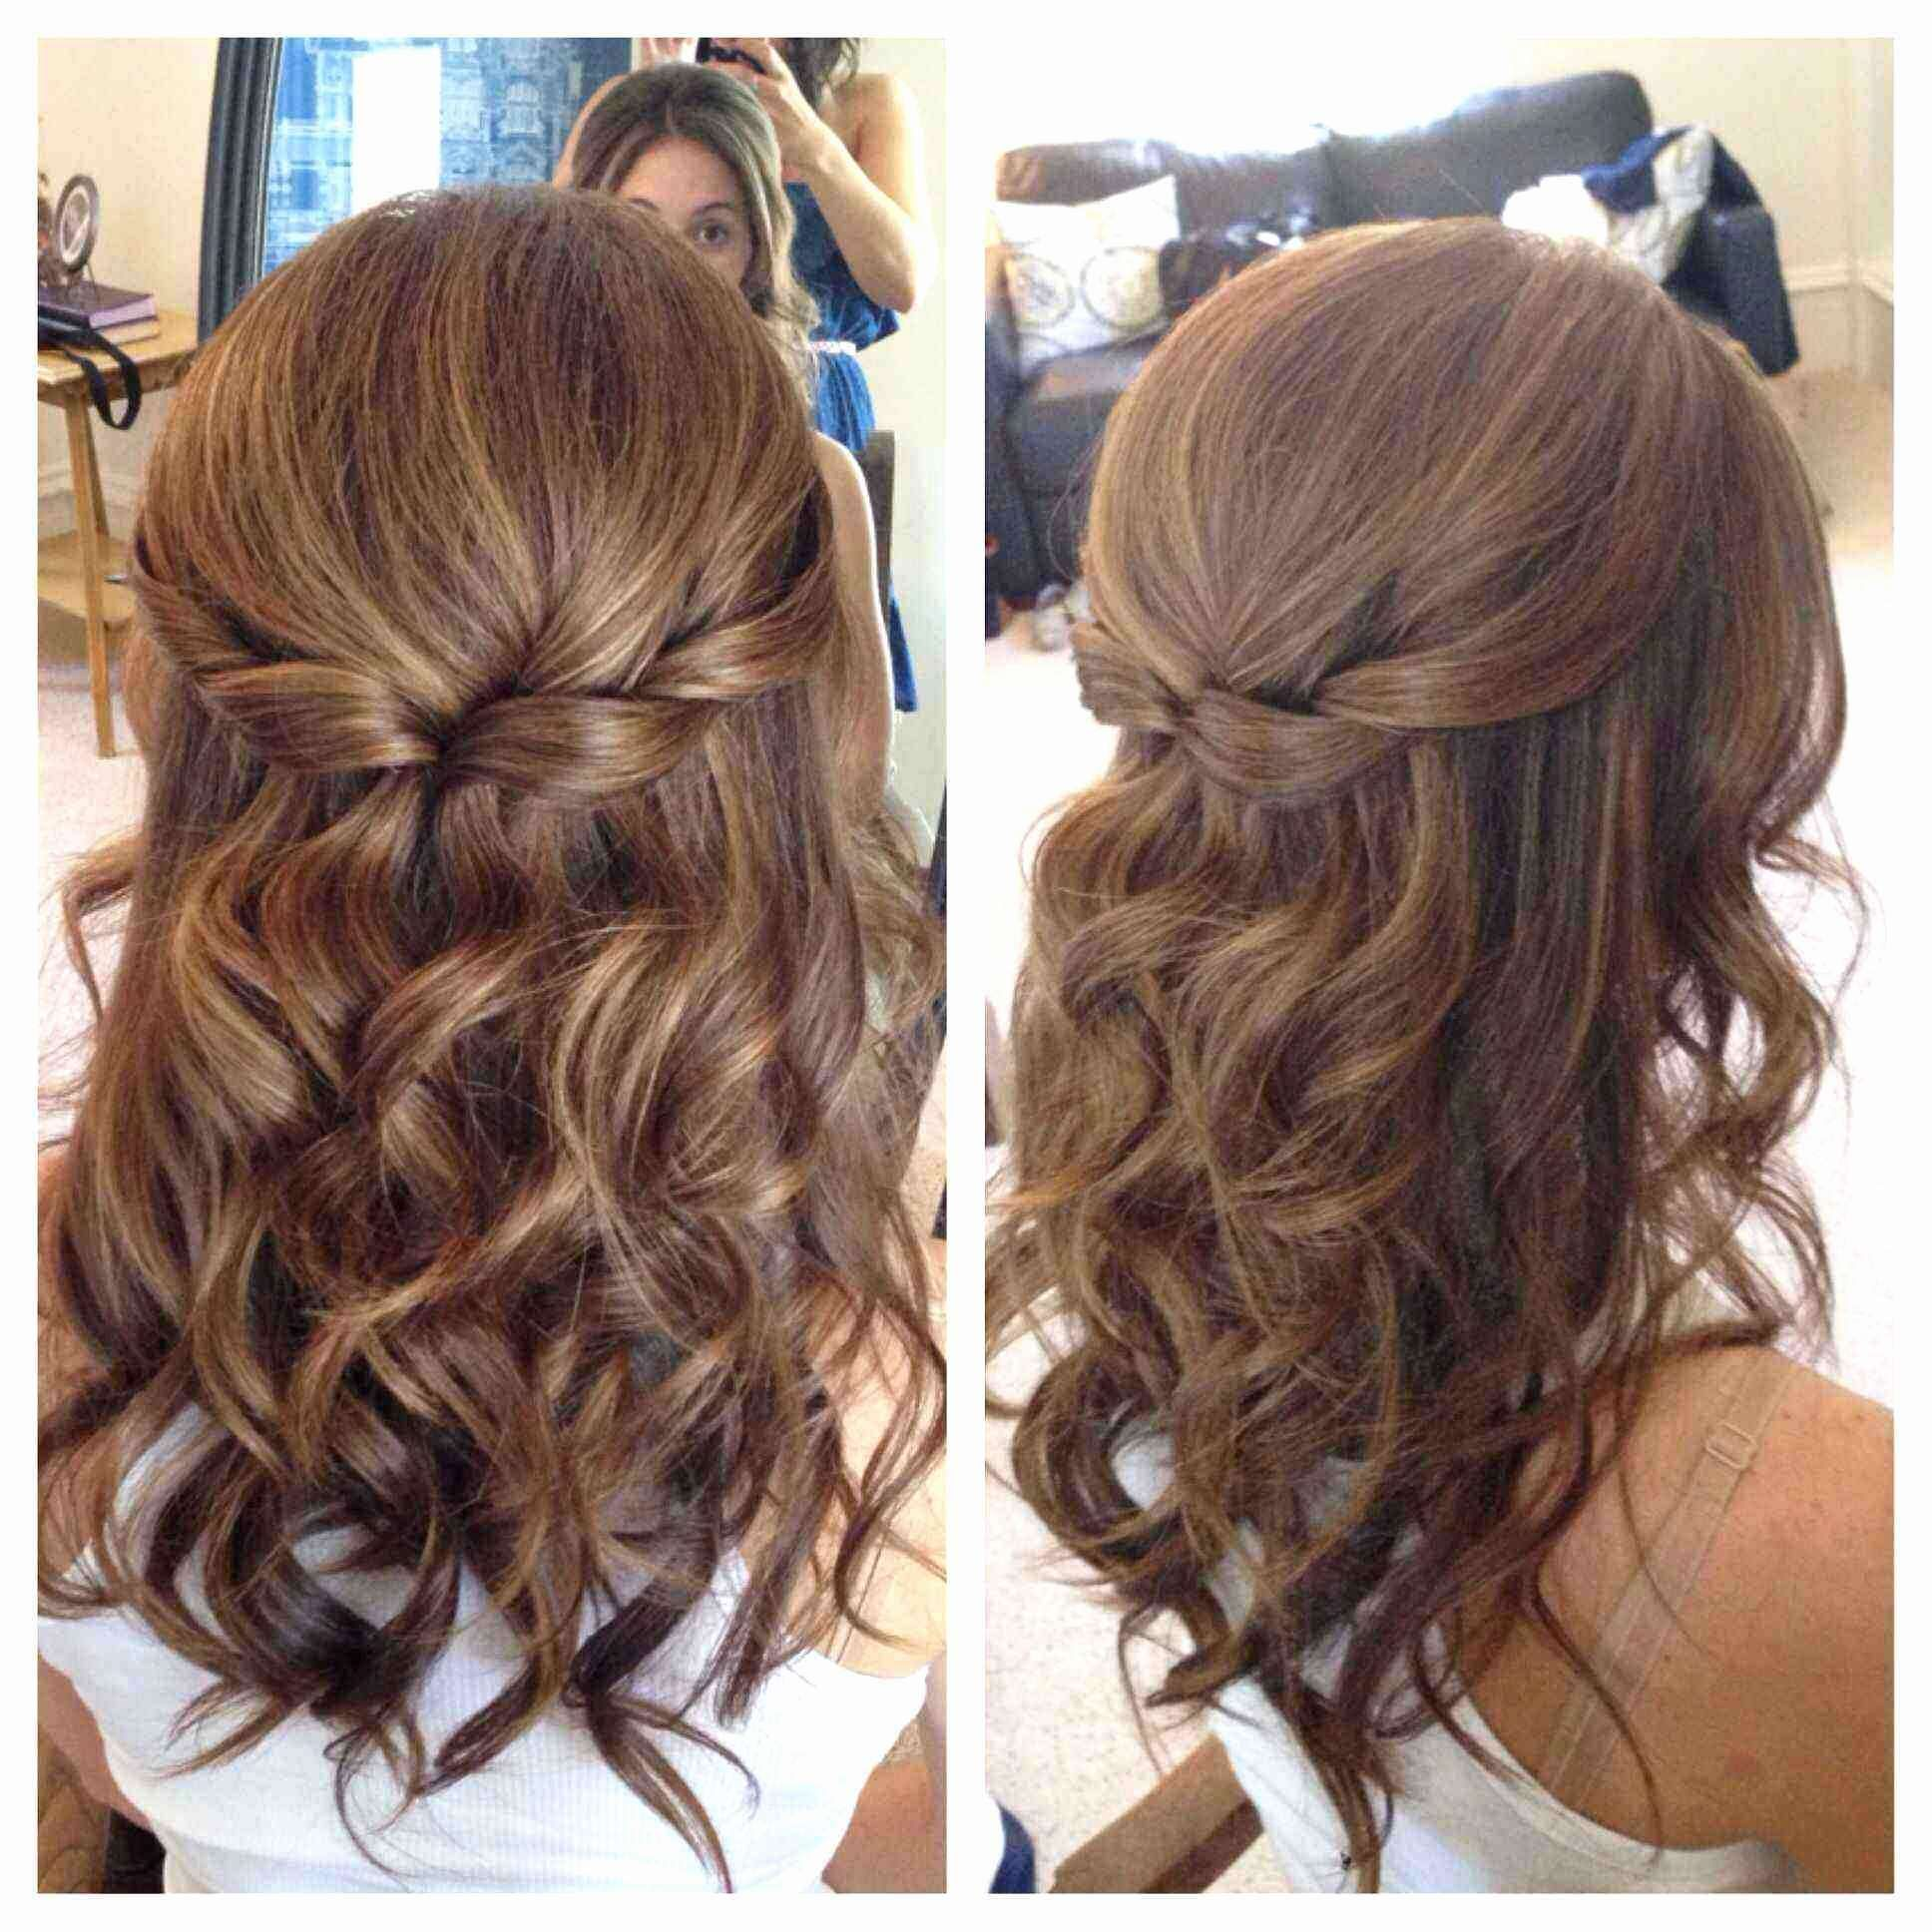 Half up half down hairstyles on straight hair lovely wedding